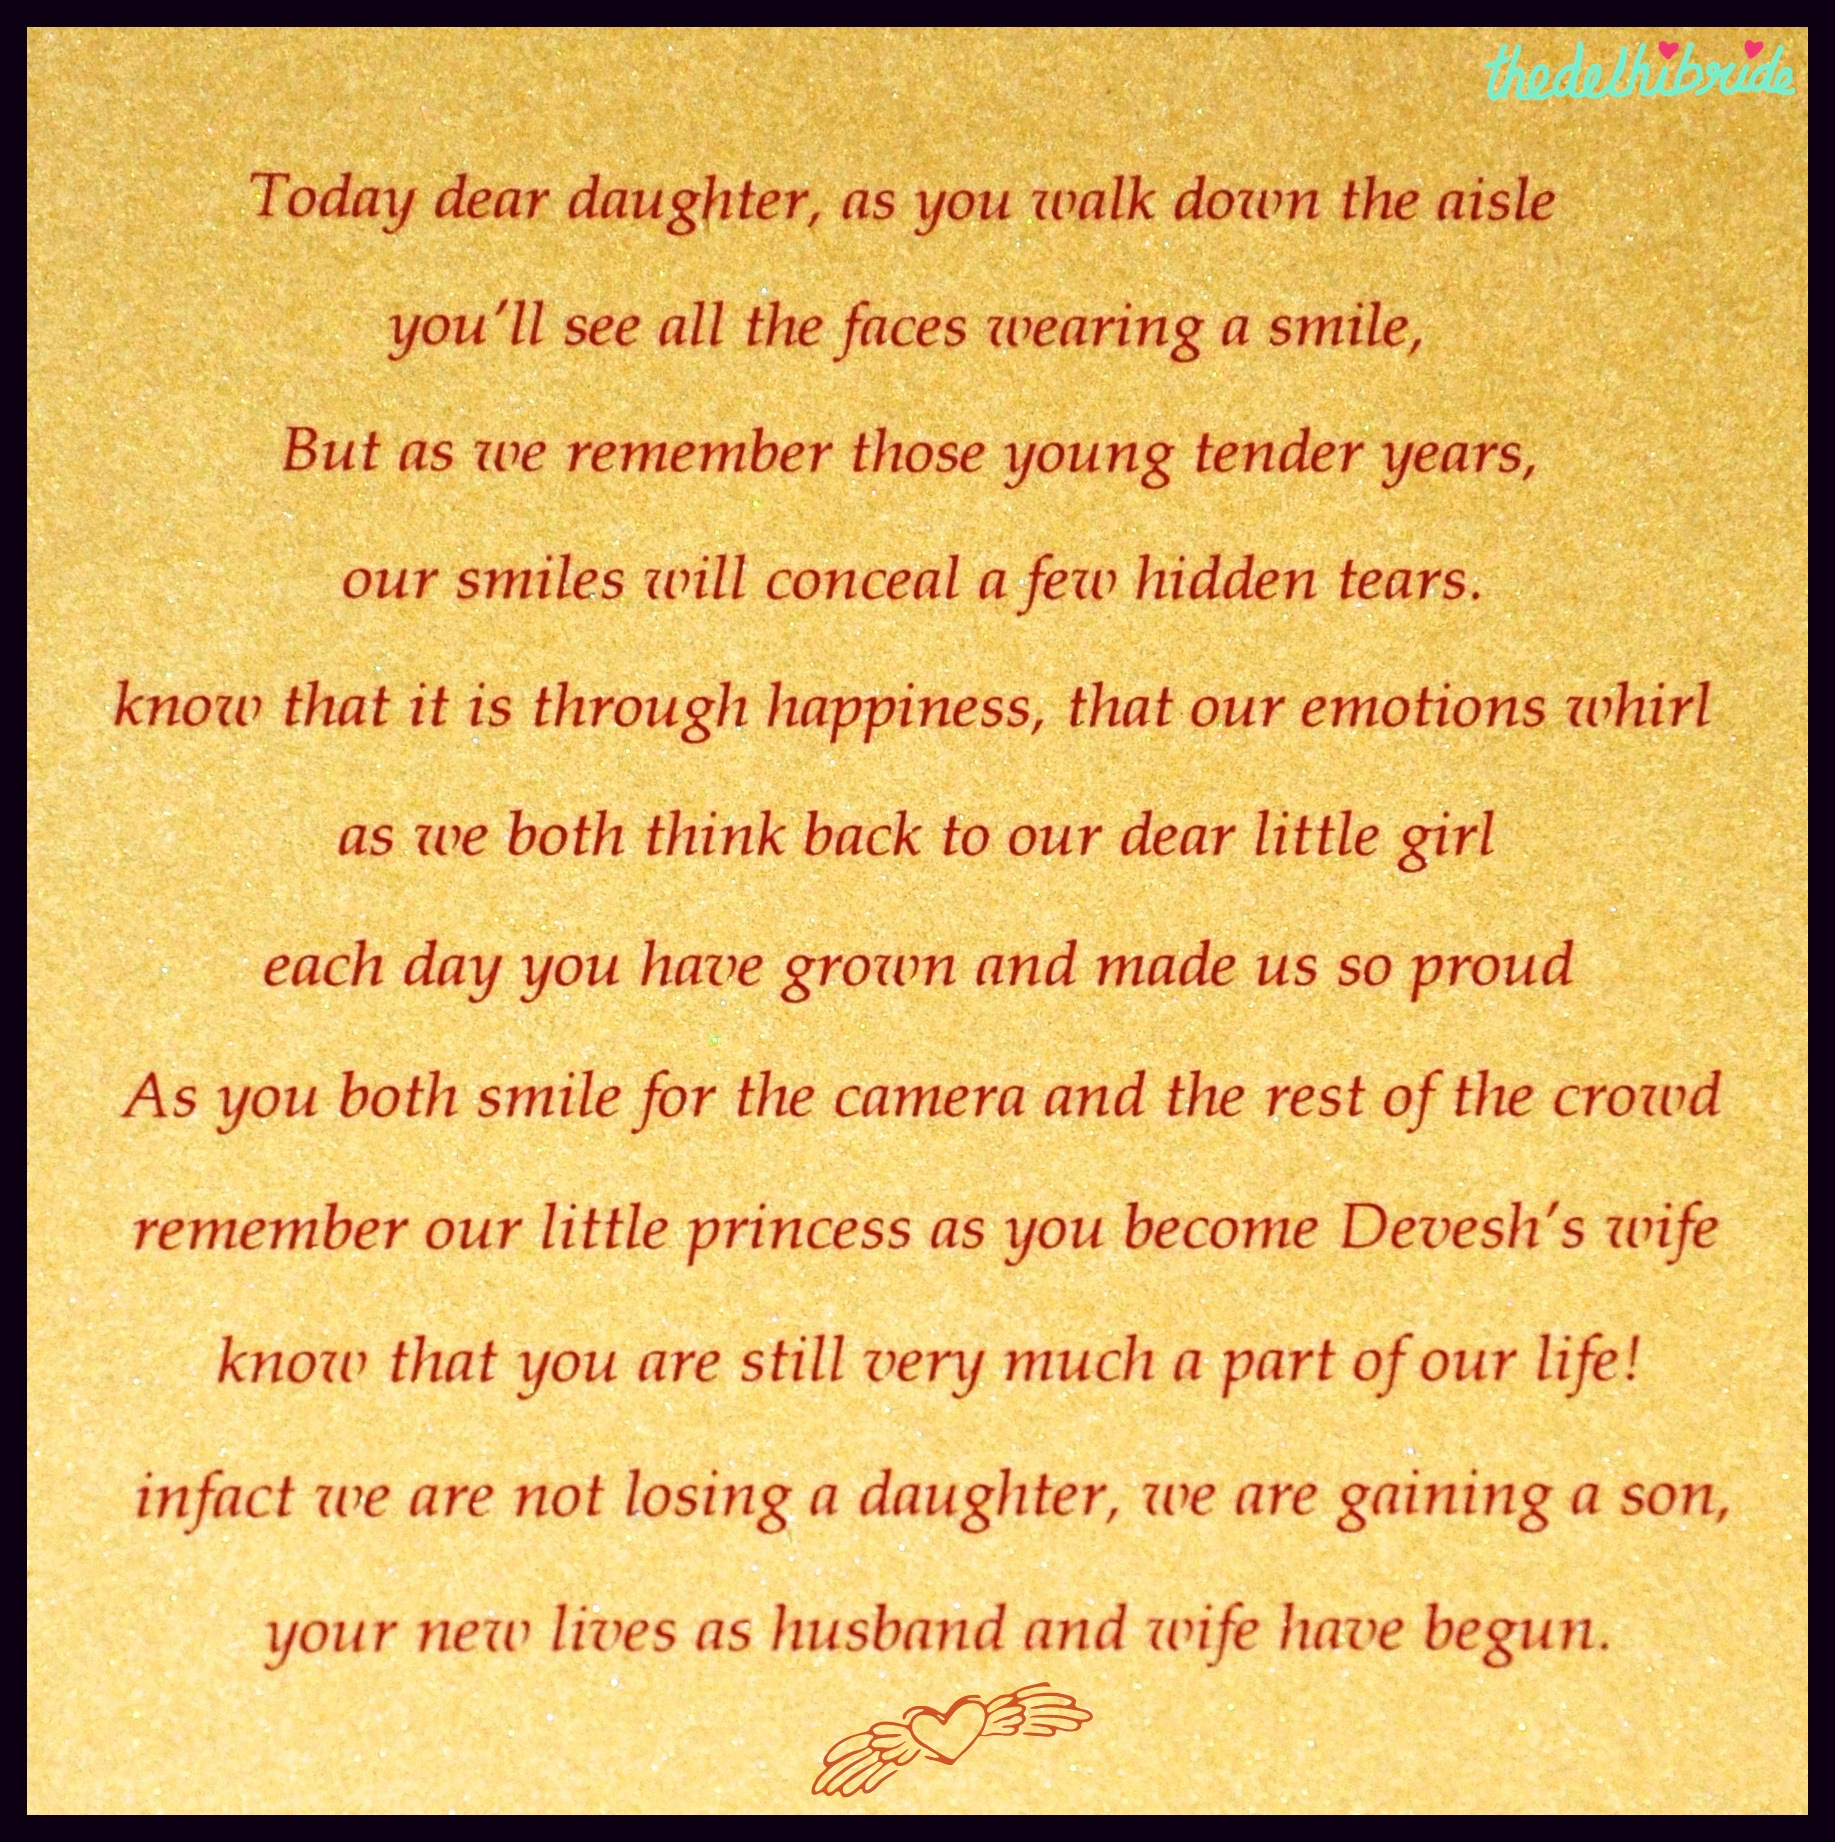 inspiration words for a wedding card an indian wedding blog